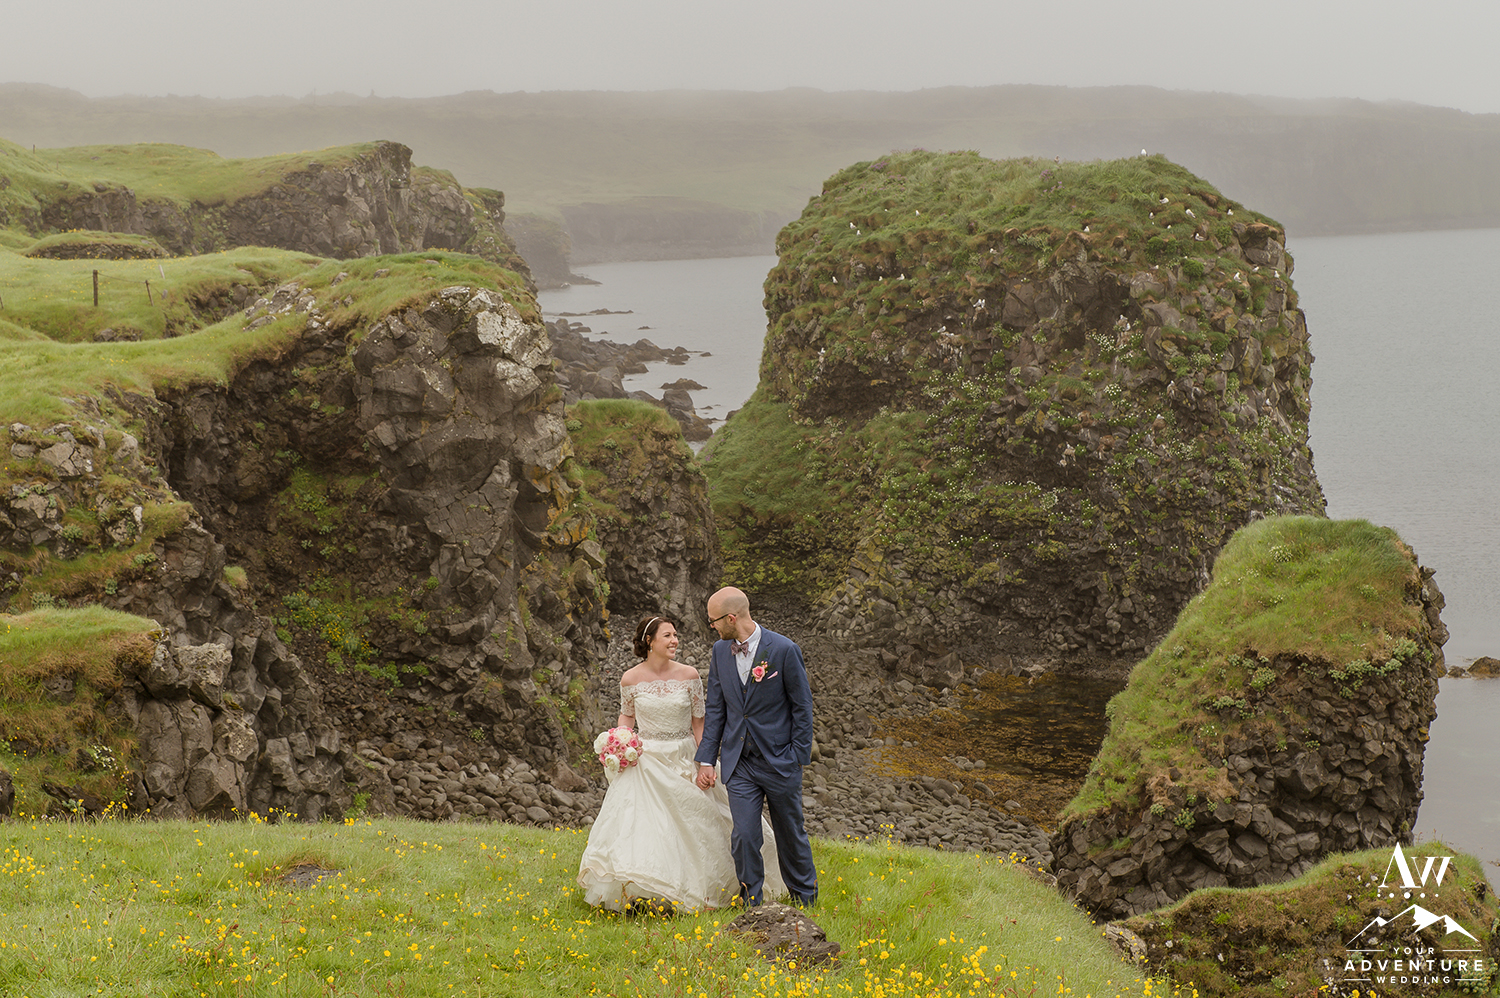 Iceland Wedding Adventure - Iceland Wedding Planner